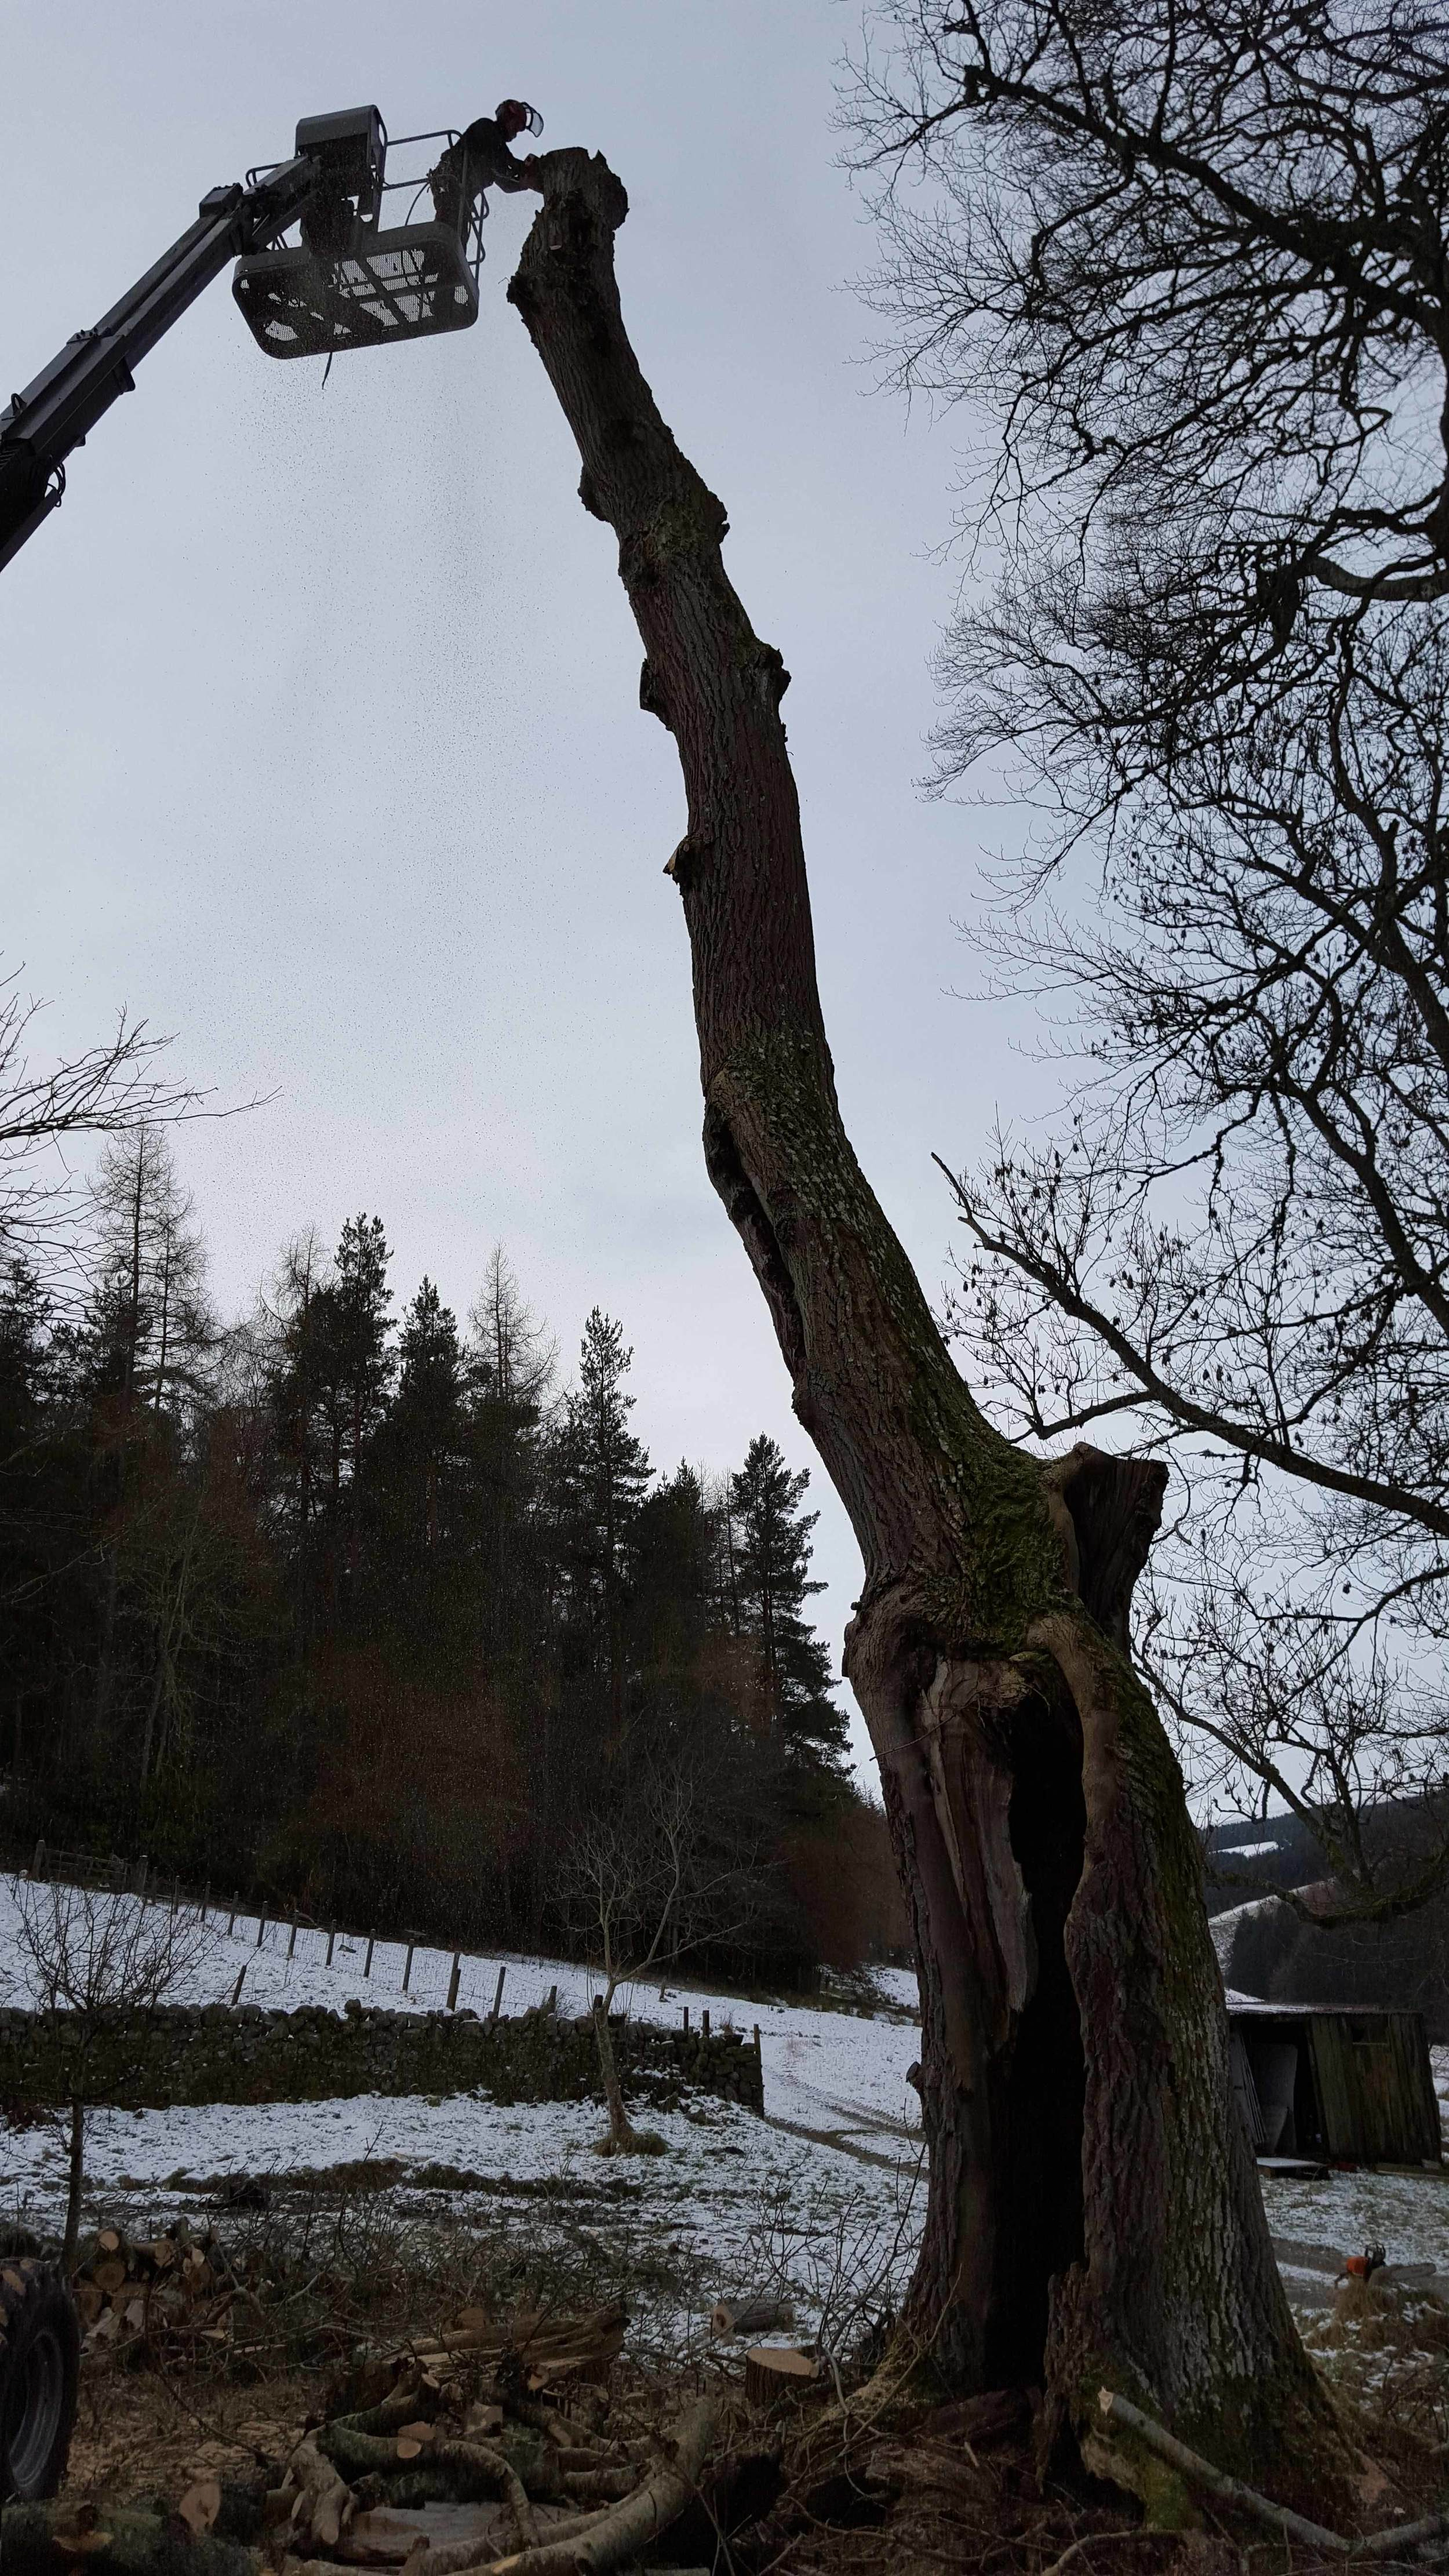 sectional felling of dangerous hollow ash with a cherry picker